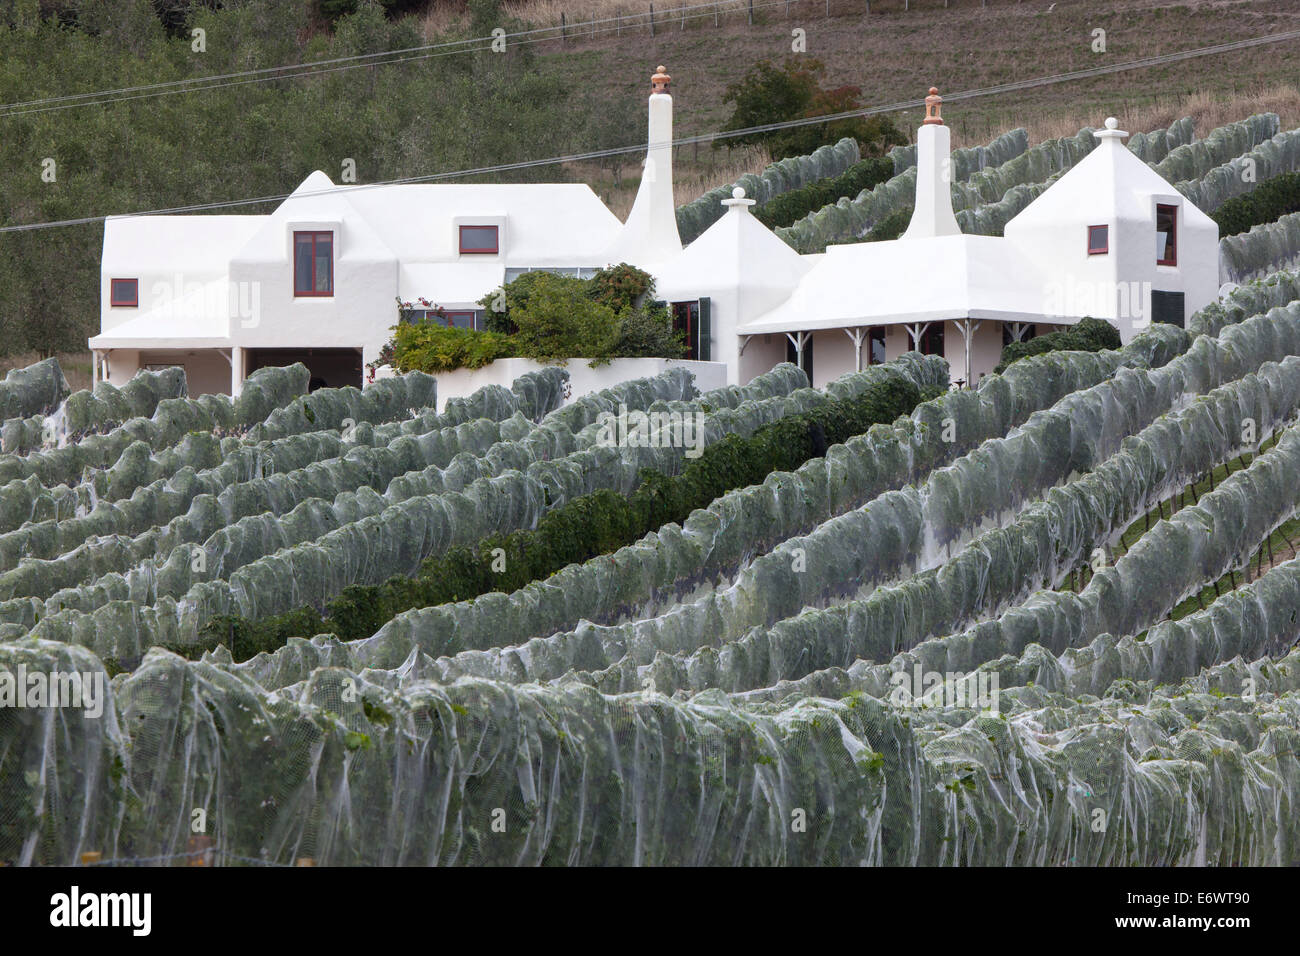 Rows of vines covered in nets, Nets protect the grapes, Buck family home in the background from architect Athfield, - Stock Image